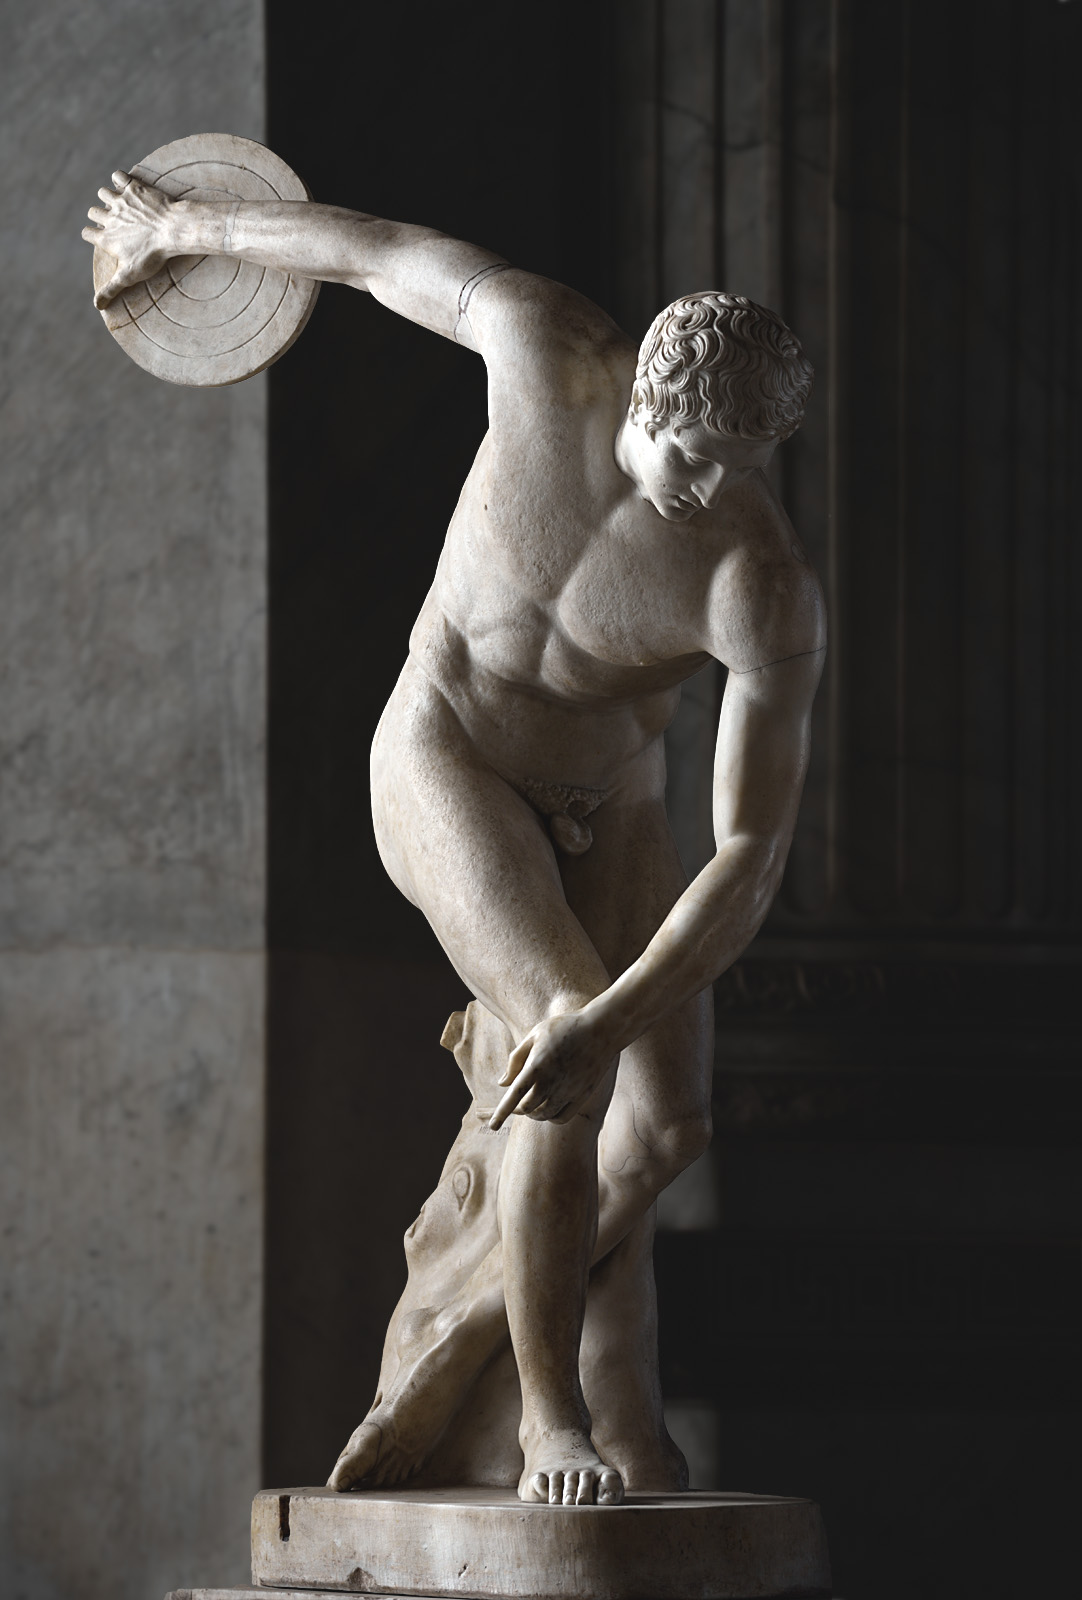 Discobolus. Marble. Roman copy of a bronze Greek original by Myron (c. 460 BCE). Inv. No. 2349. Rome, Vatican Museums, Pius-Clementine Museum, Room of the Biga, 21